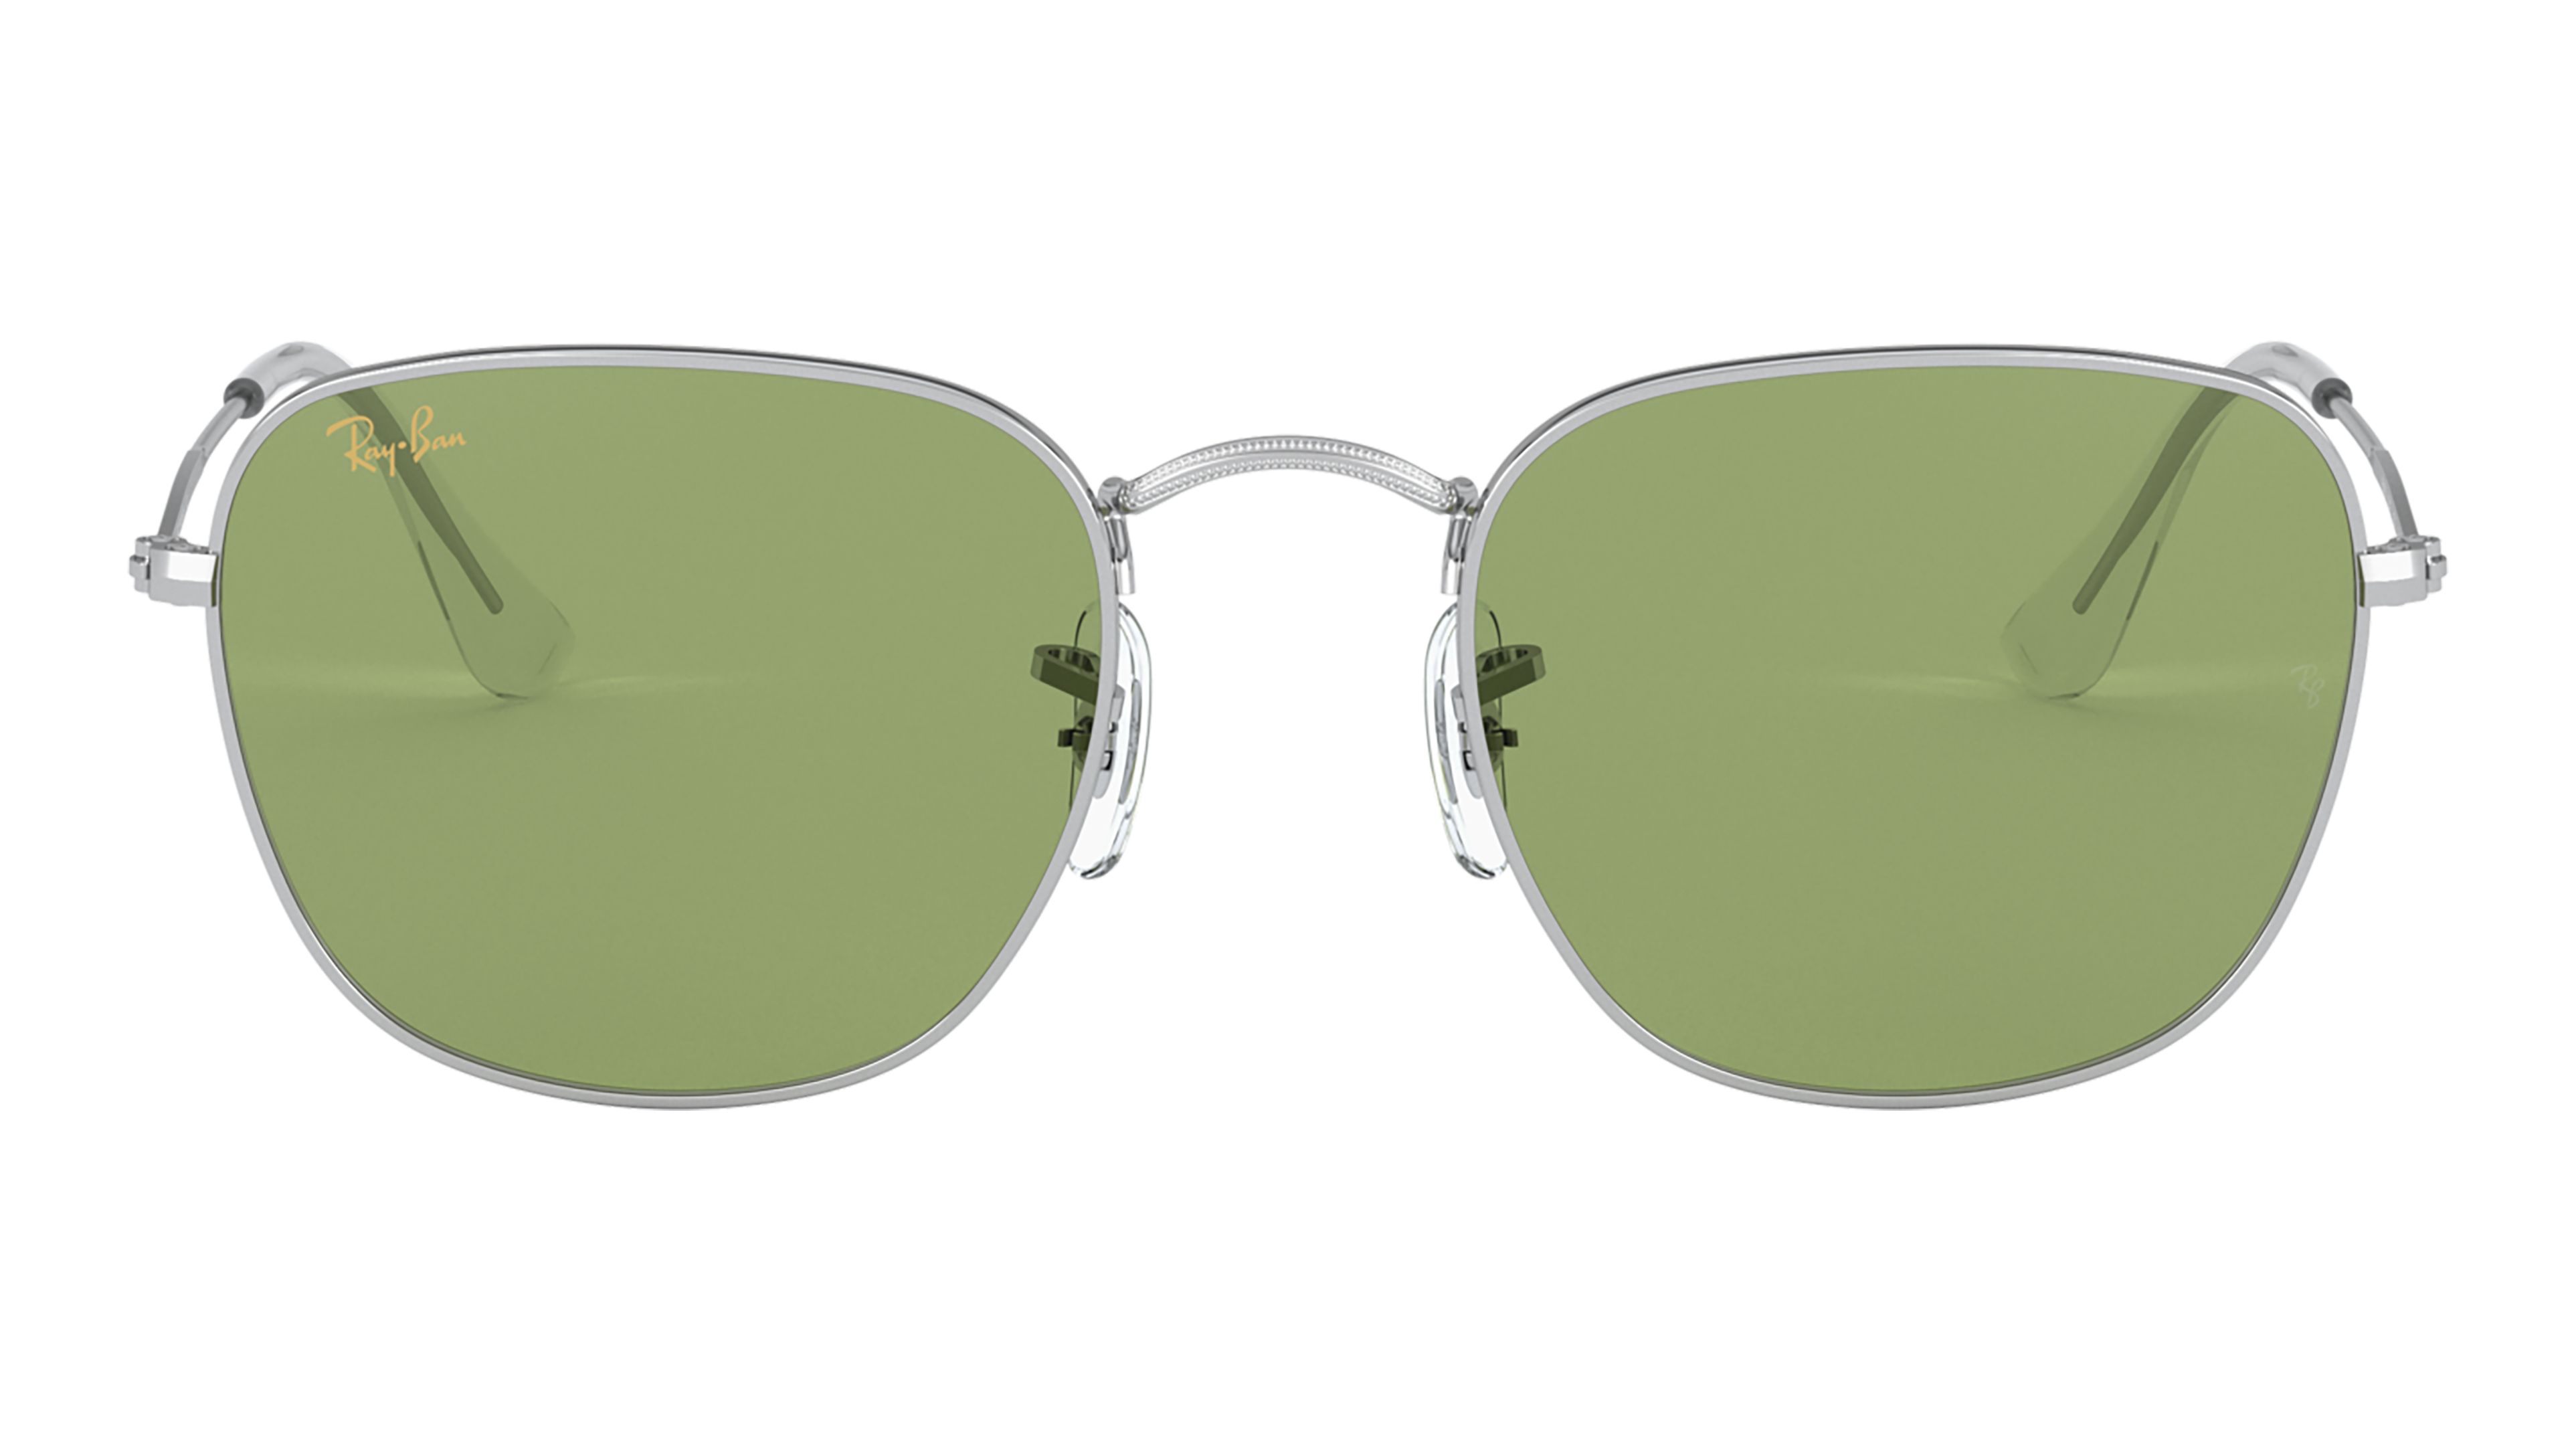 Front Ray-Ban Ray-Ban 0RB3857 91984E 51/20 Zilver/Groen